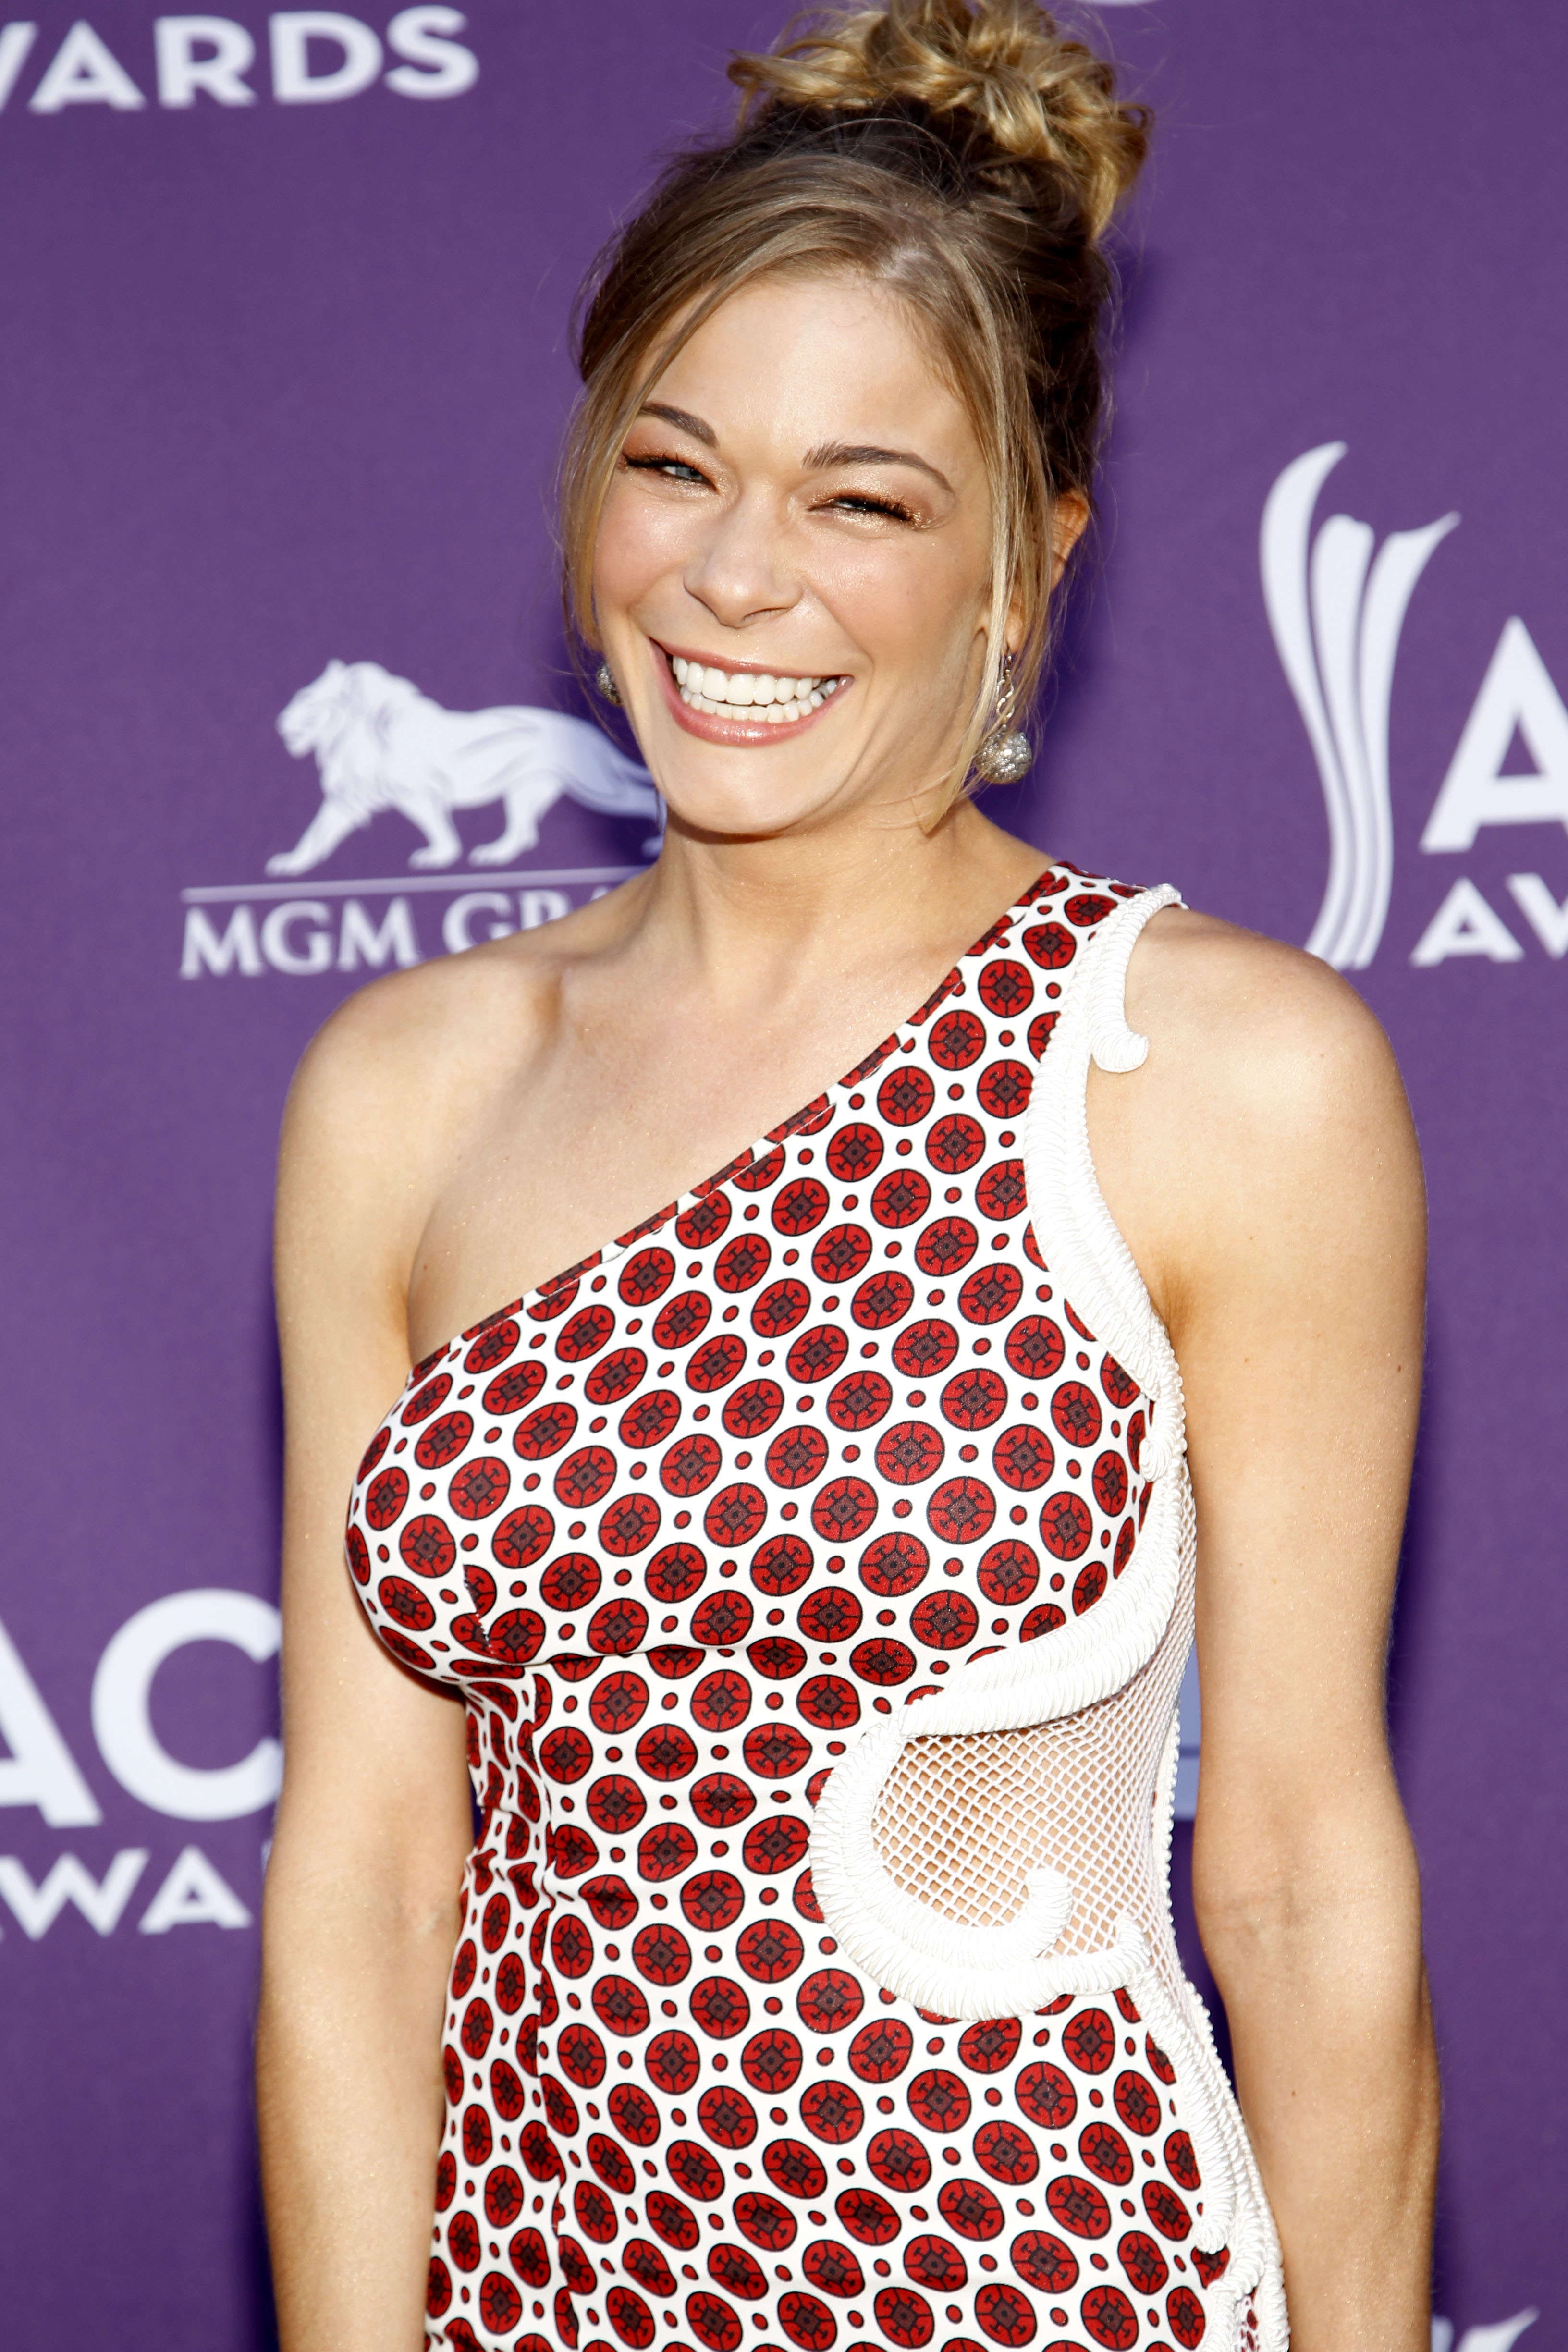 LeAnn Rimes red stella Mccartney dress affair